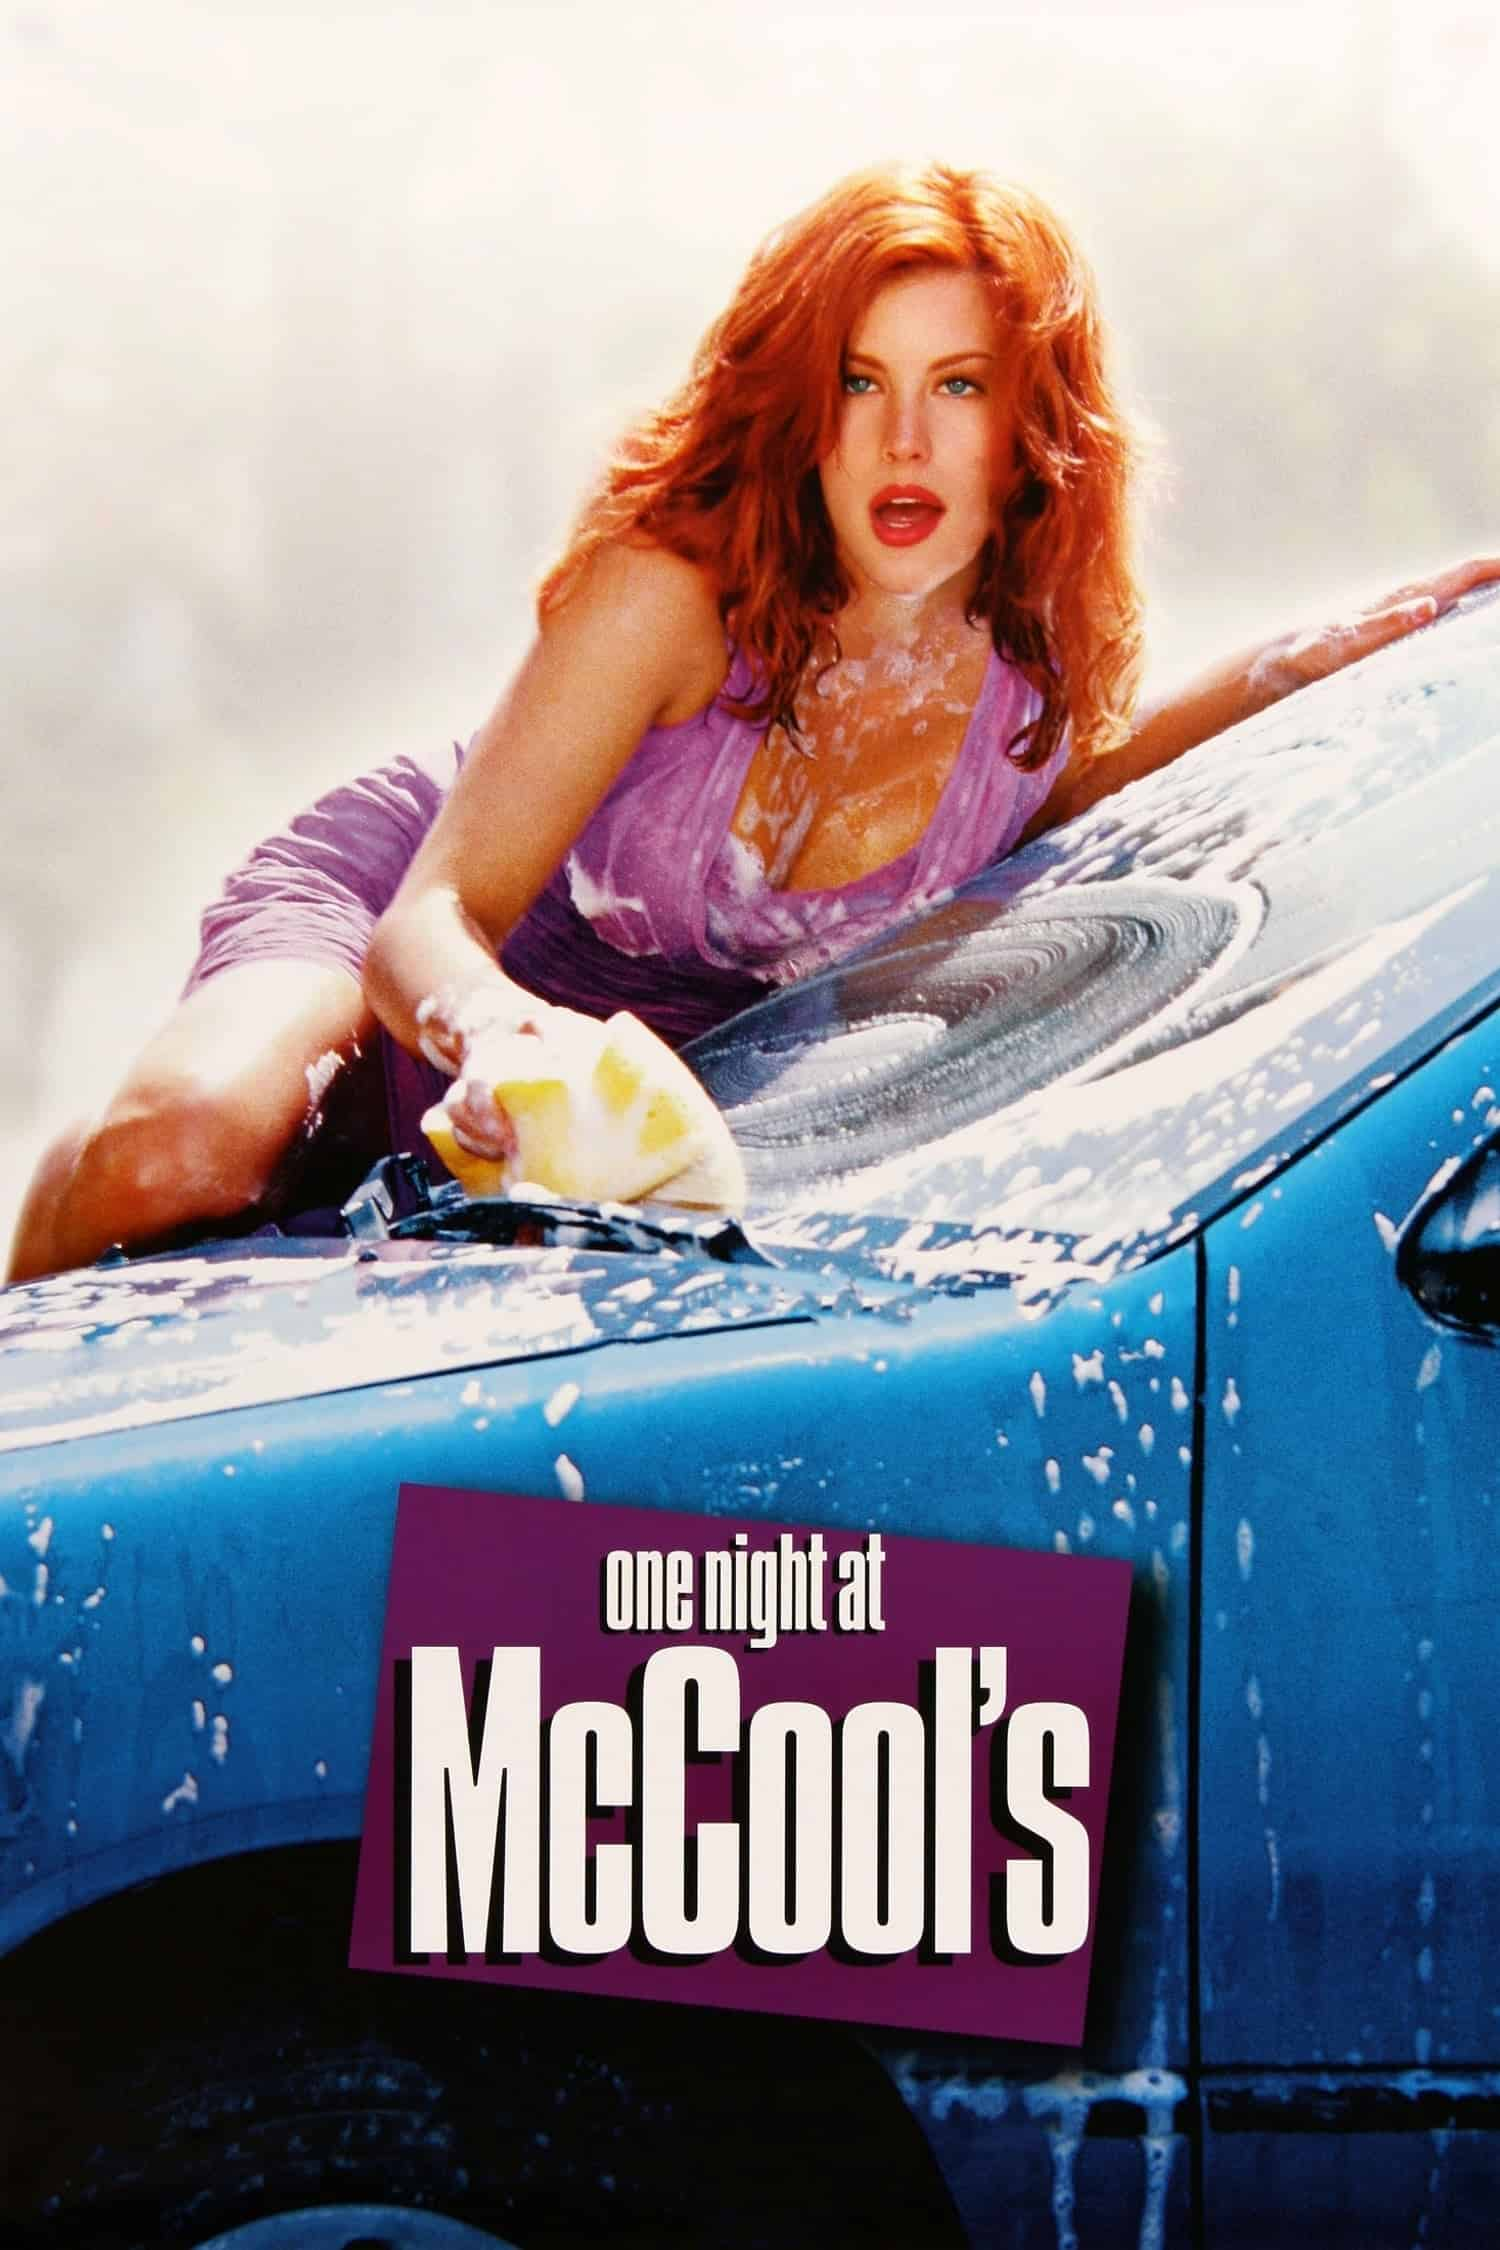 One Night at McCool's, 2001